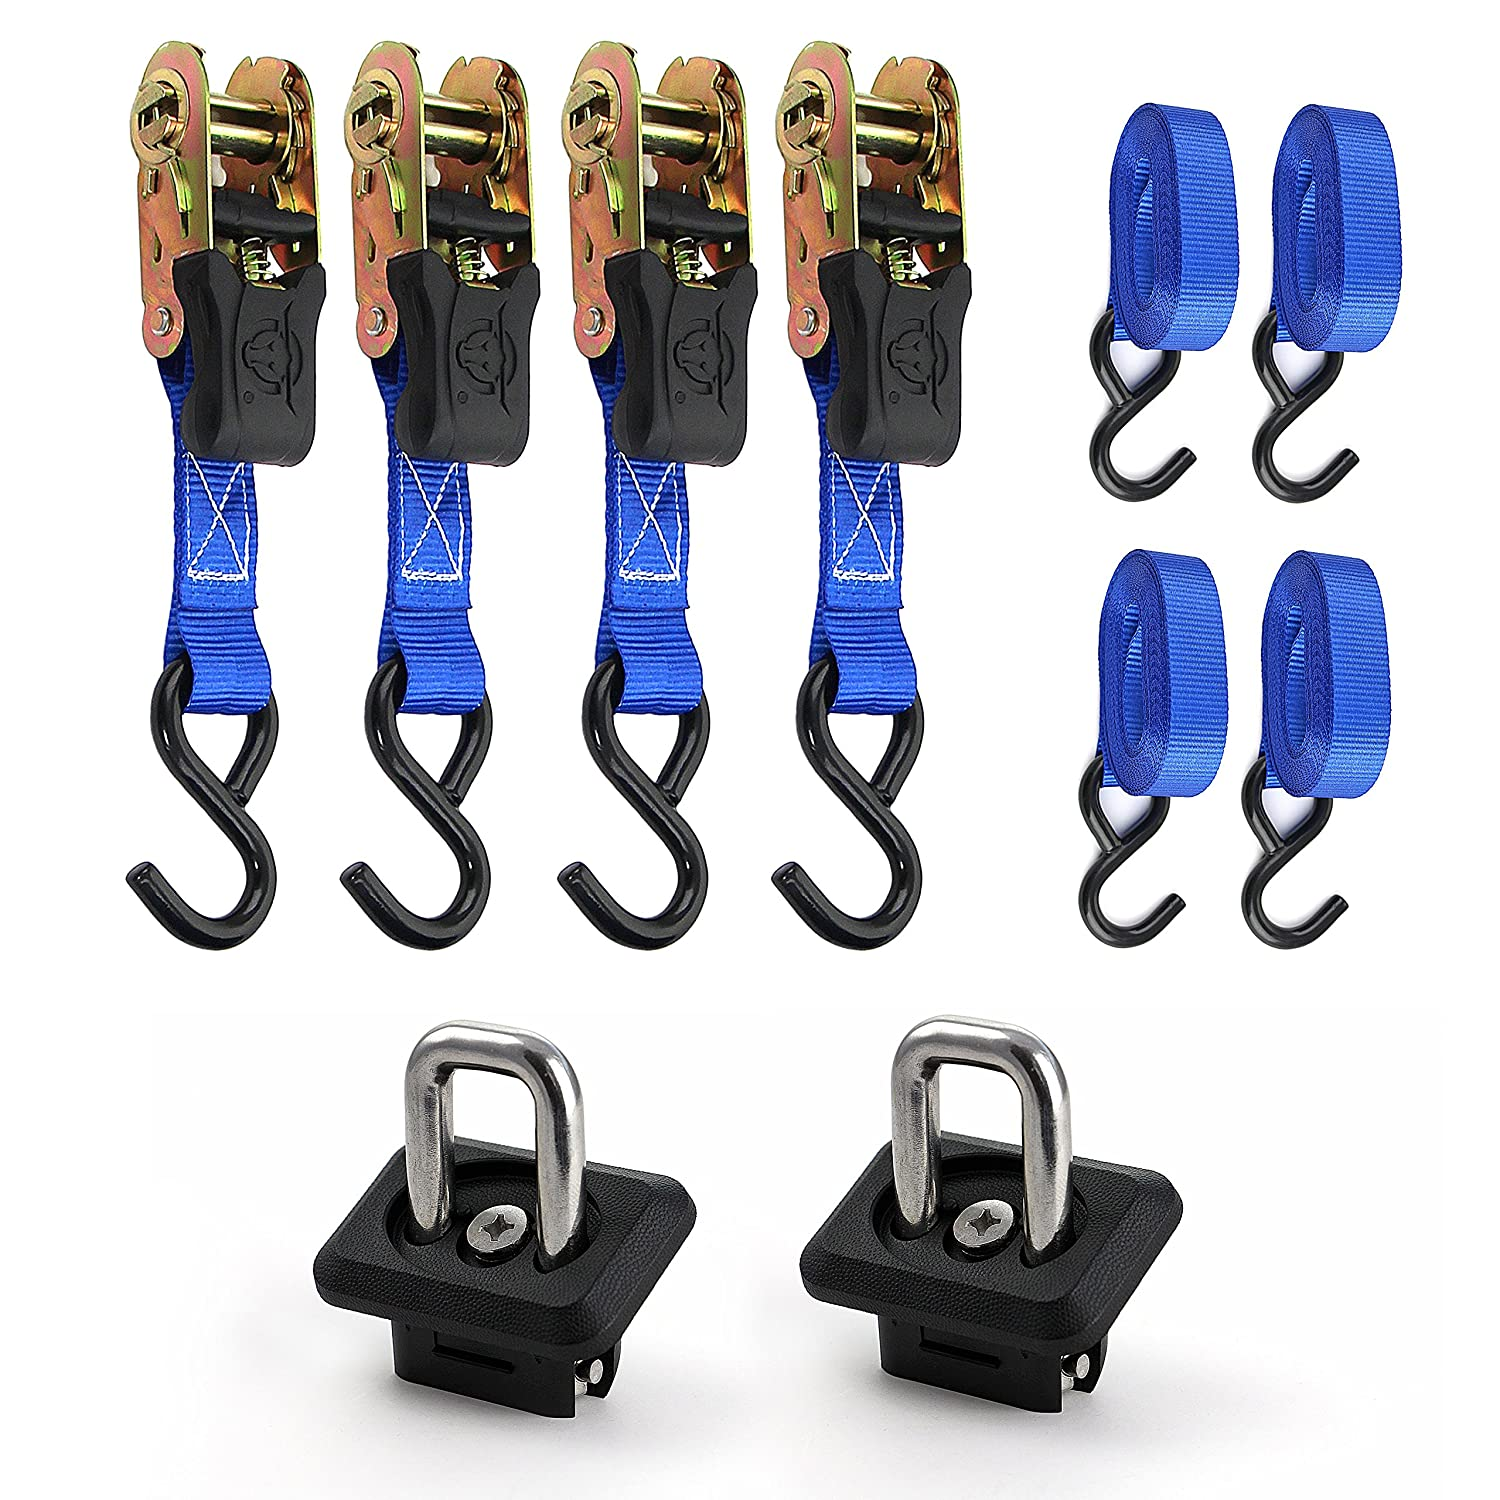 5 Year 100/% Replacement Guarantee 1 x 15 4 Pack Includes 1 Pair BULL RING Retractable Anchors Premium Ratchet Strap by Bull Ring Your Choice to Fit Your Truck